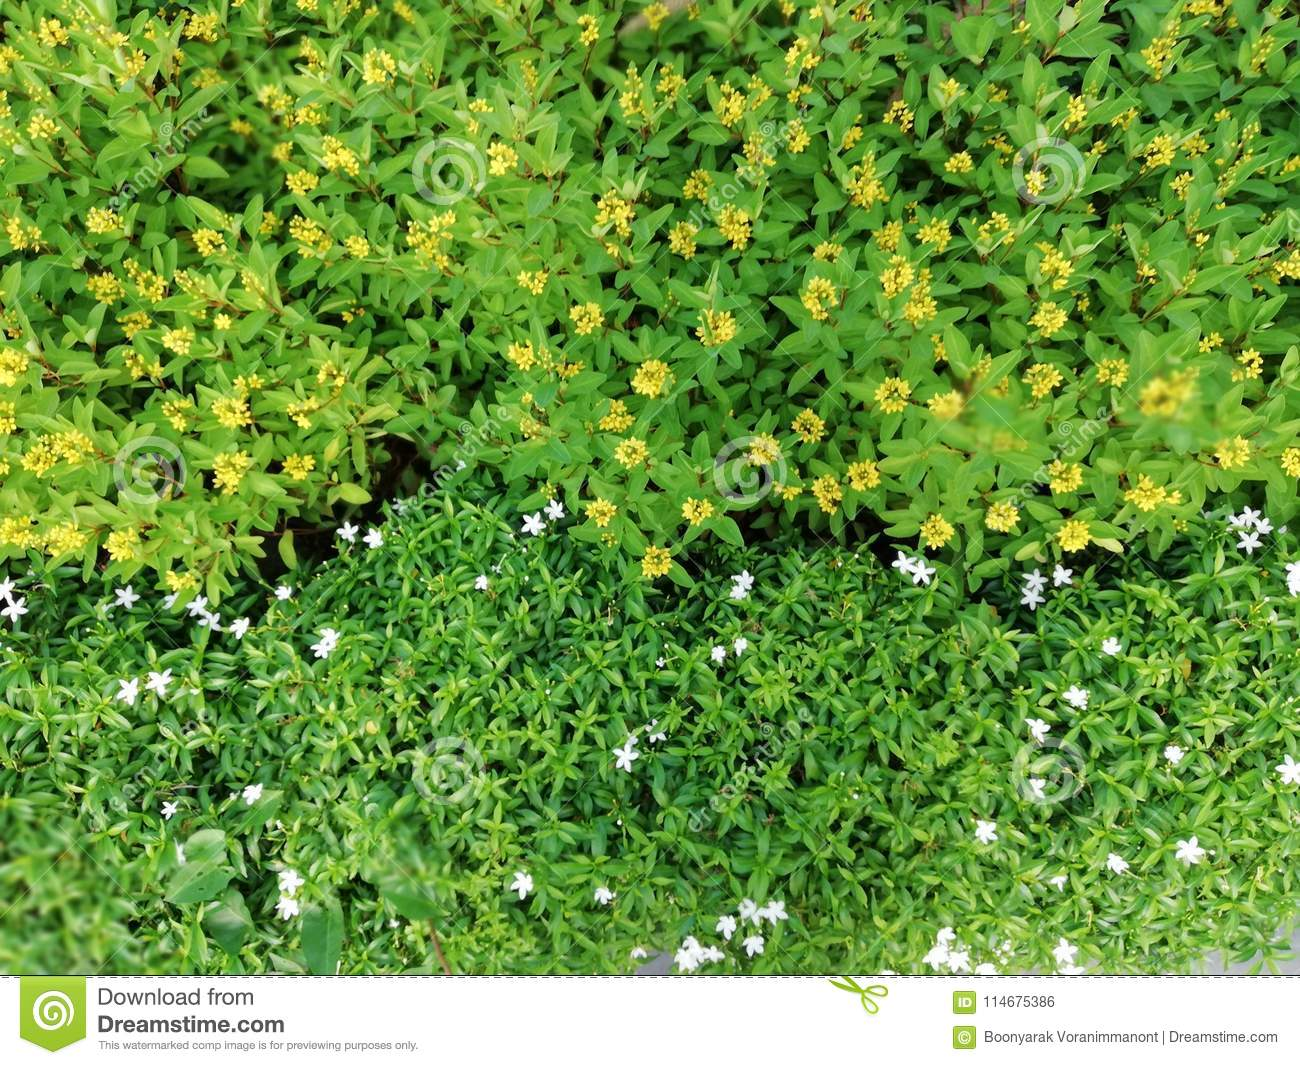 Small white and yellow flowers green leaves garden top view stock download small white and yellow flowers green leaves garden top view stock photo image of mightylinksfo